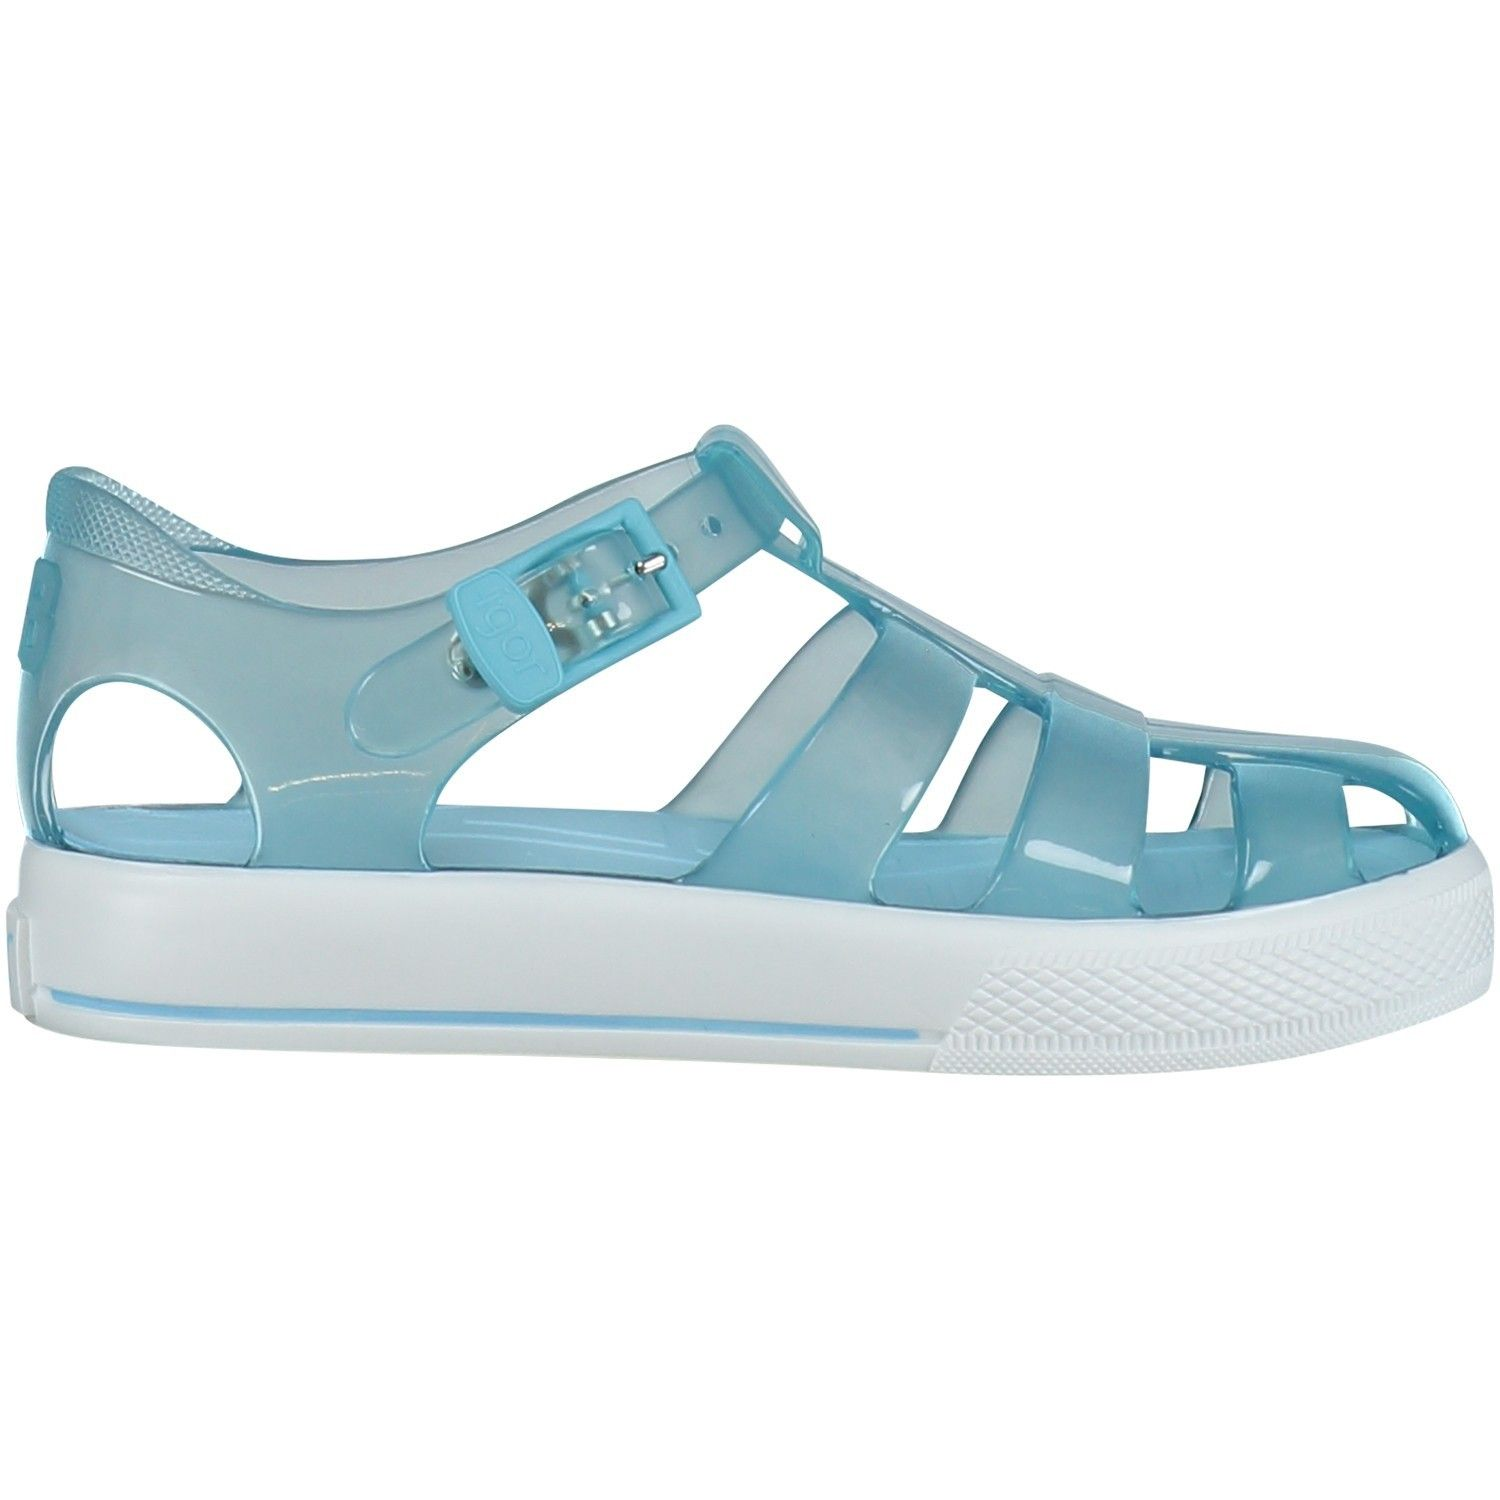 Picture of Igor S10107 kids sandals light blue